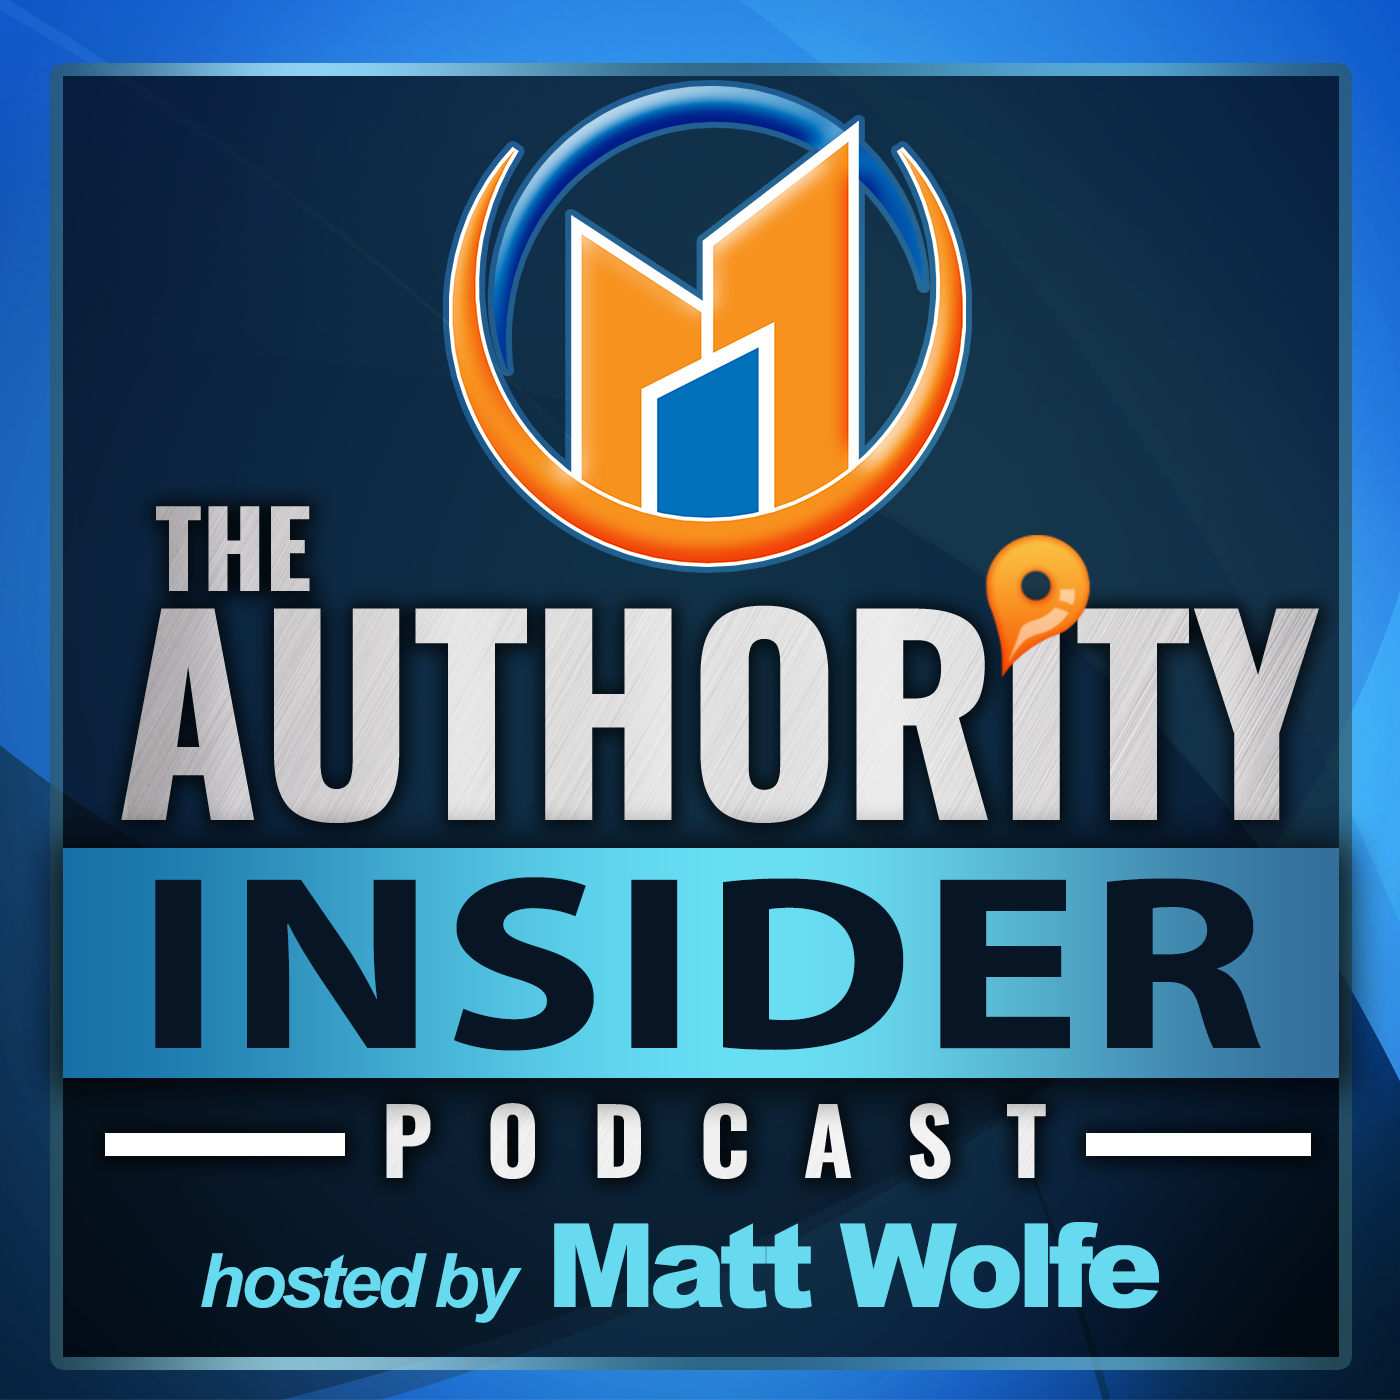 The Authority Insider Podcast